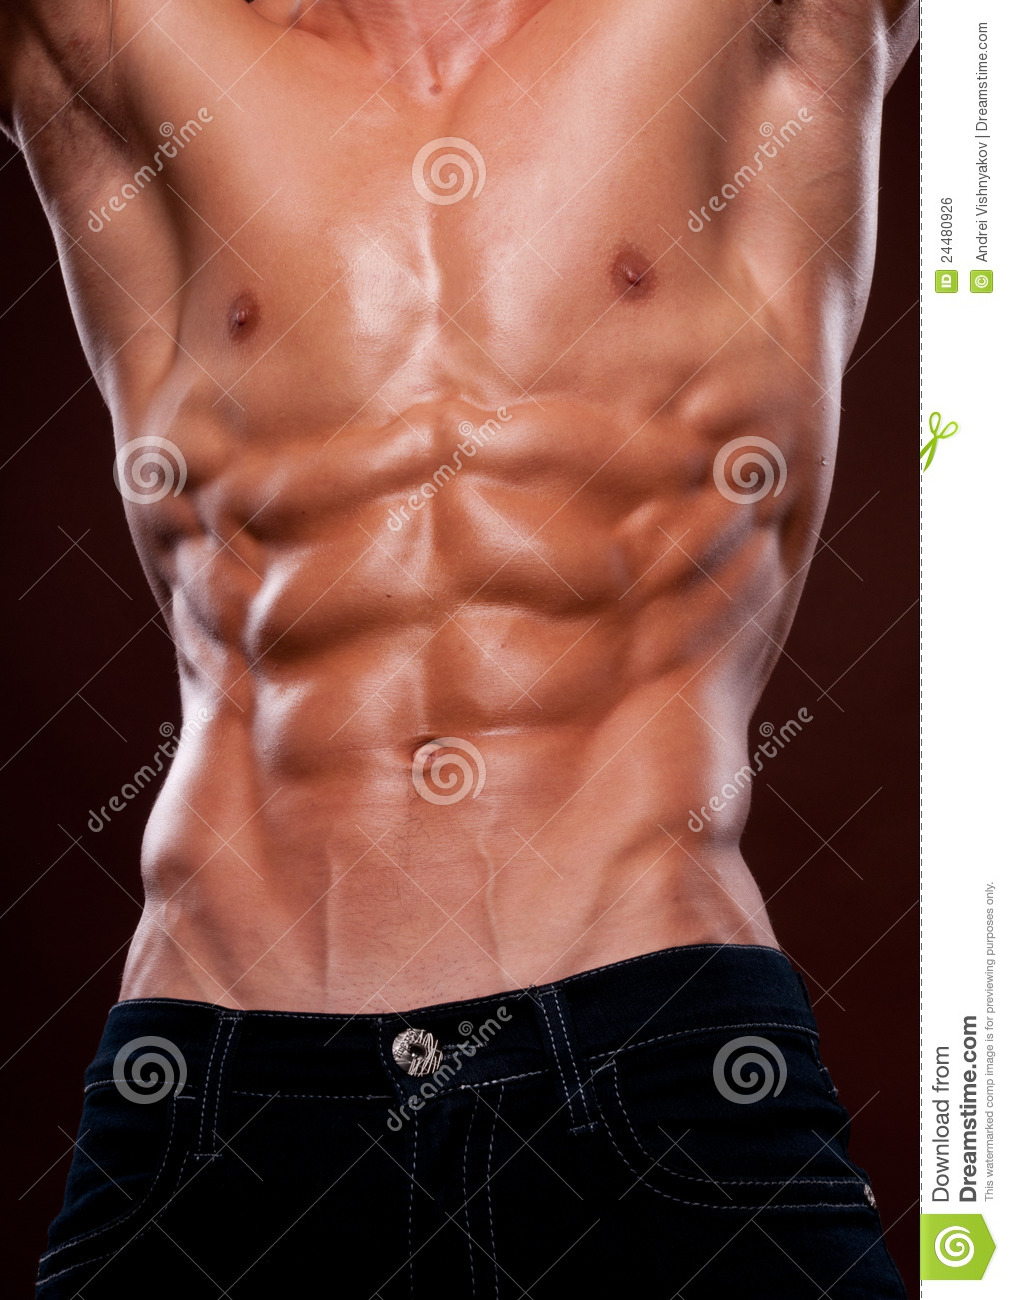 Torso Six Pack Stock Images - Download 6,638 Royalty Free